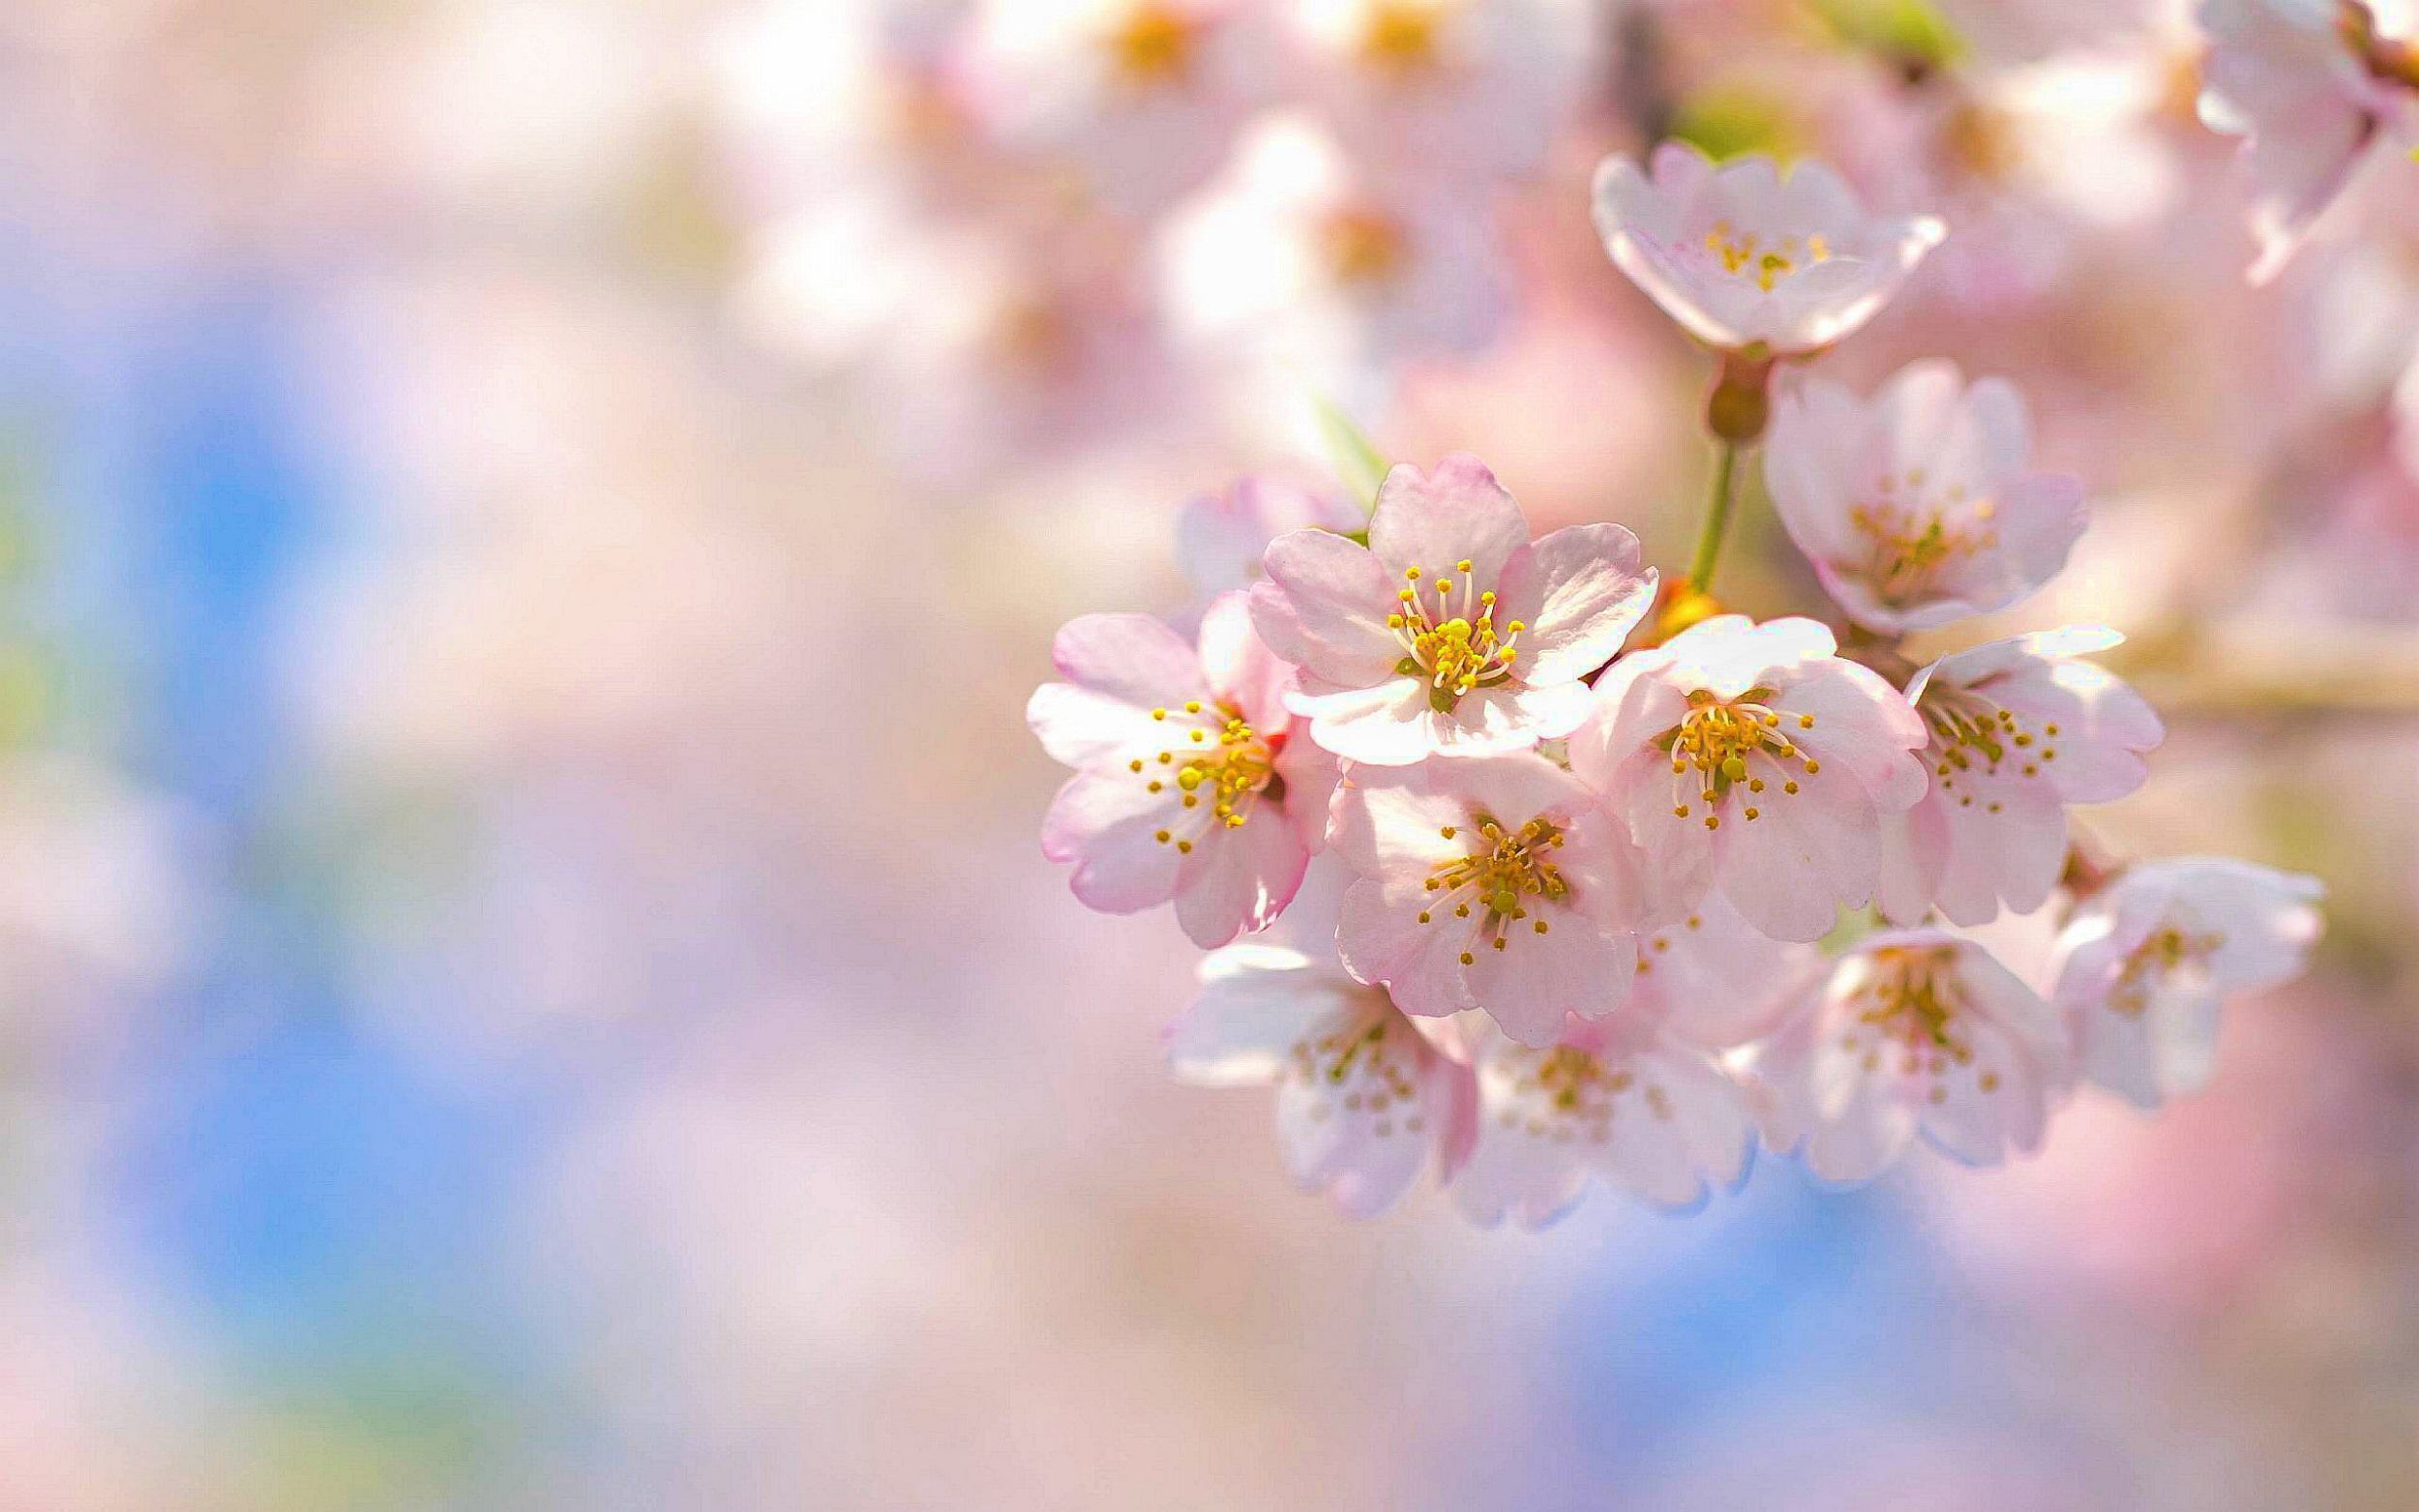 Blossoms Wallpaper Pack